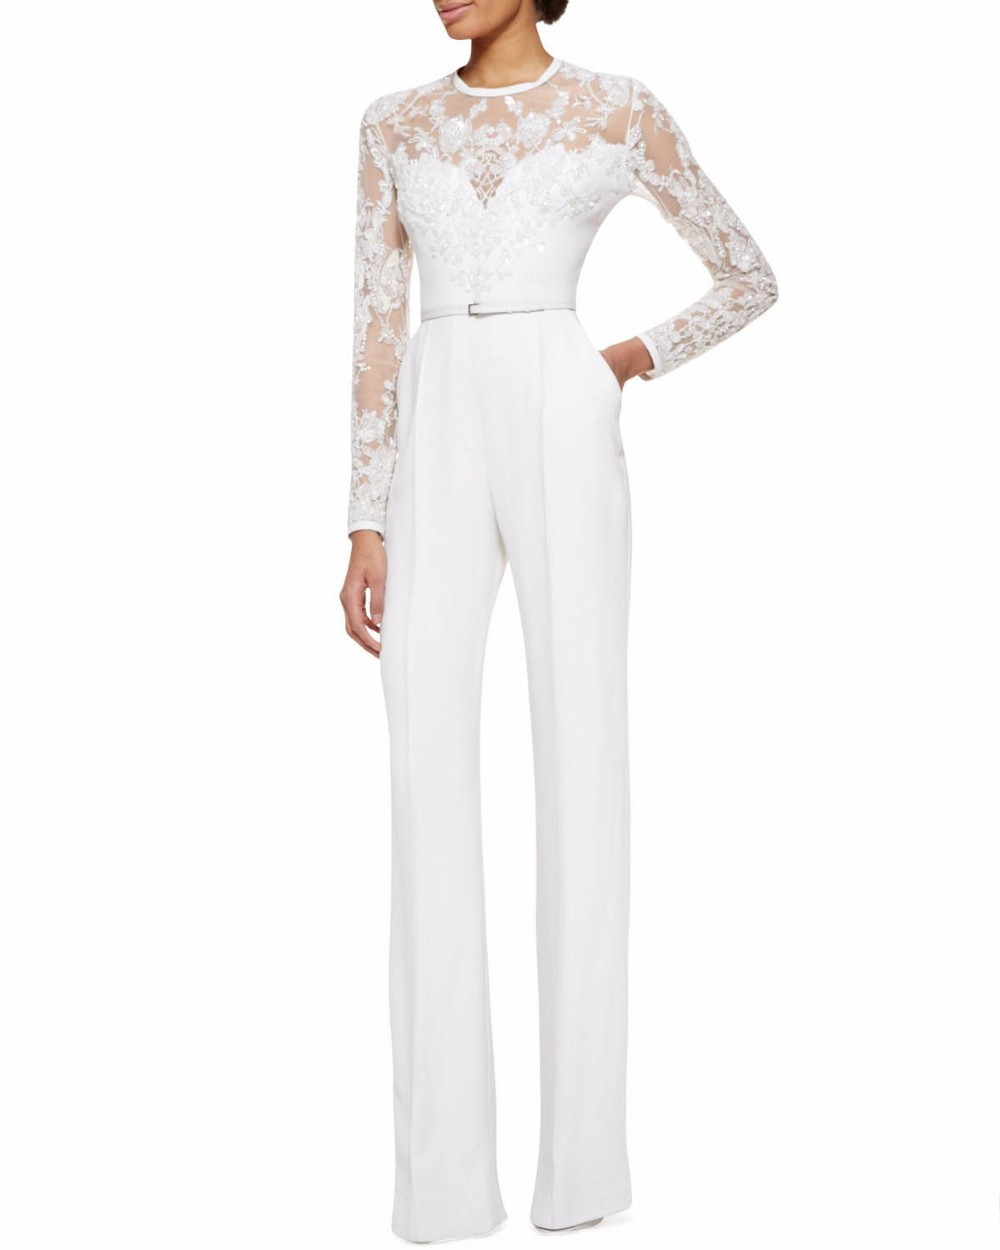 2016 white mother of the bride pant suits jumpsuit with long sleeves lace embellished women. Black Bedroom Furniture Sets. Home Design Ideas